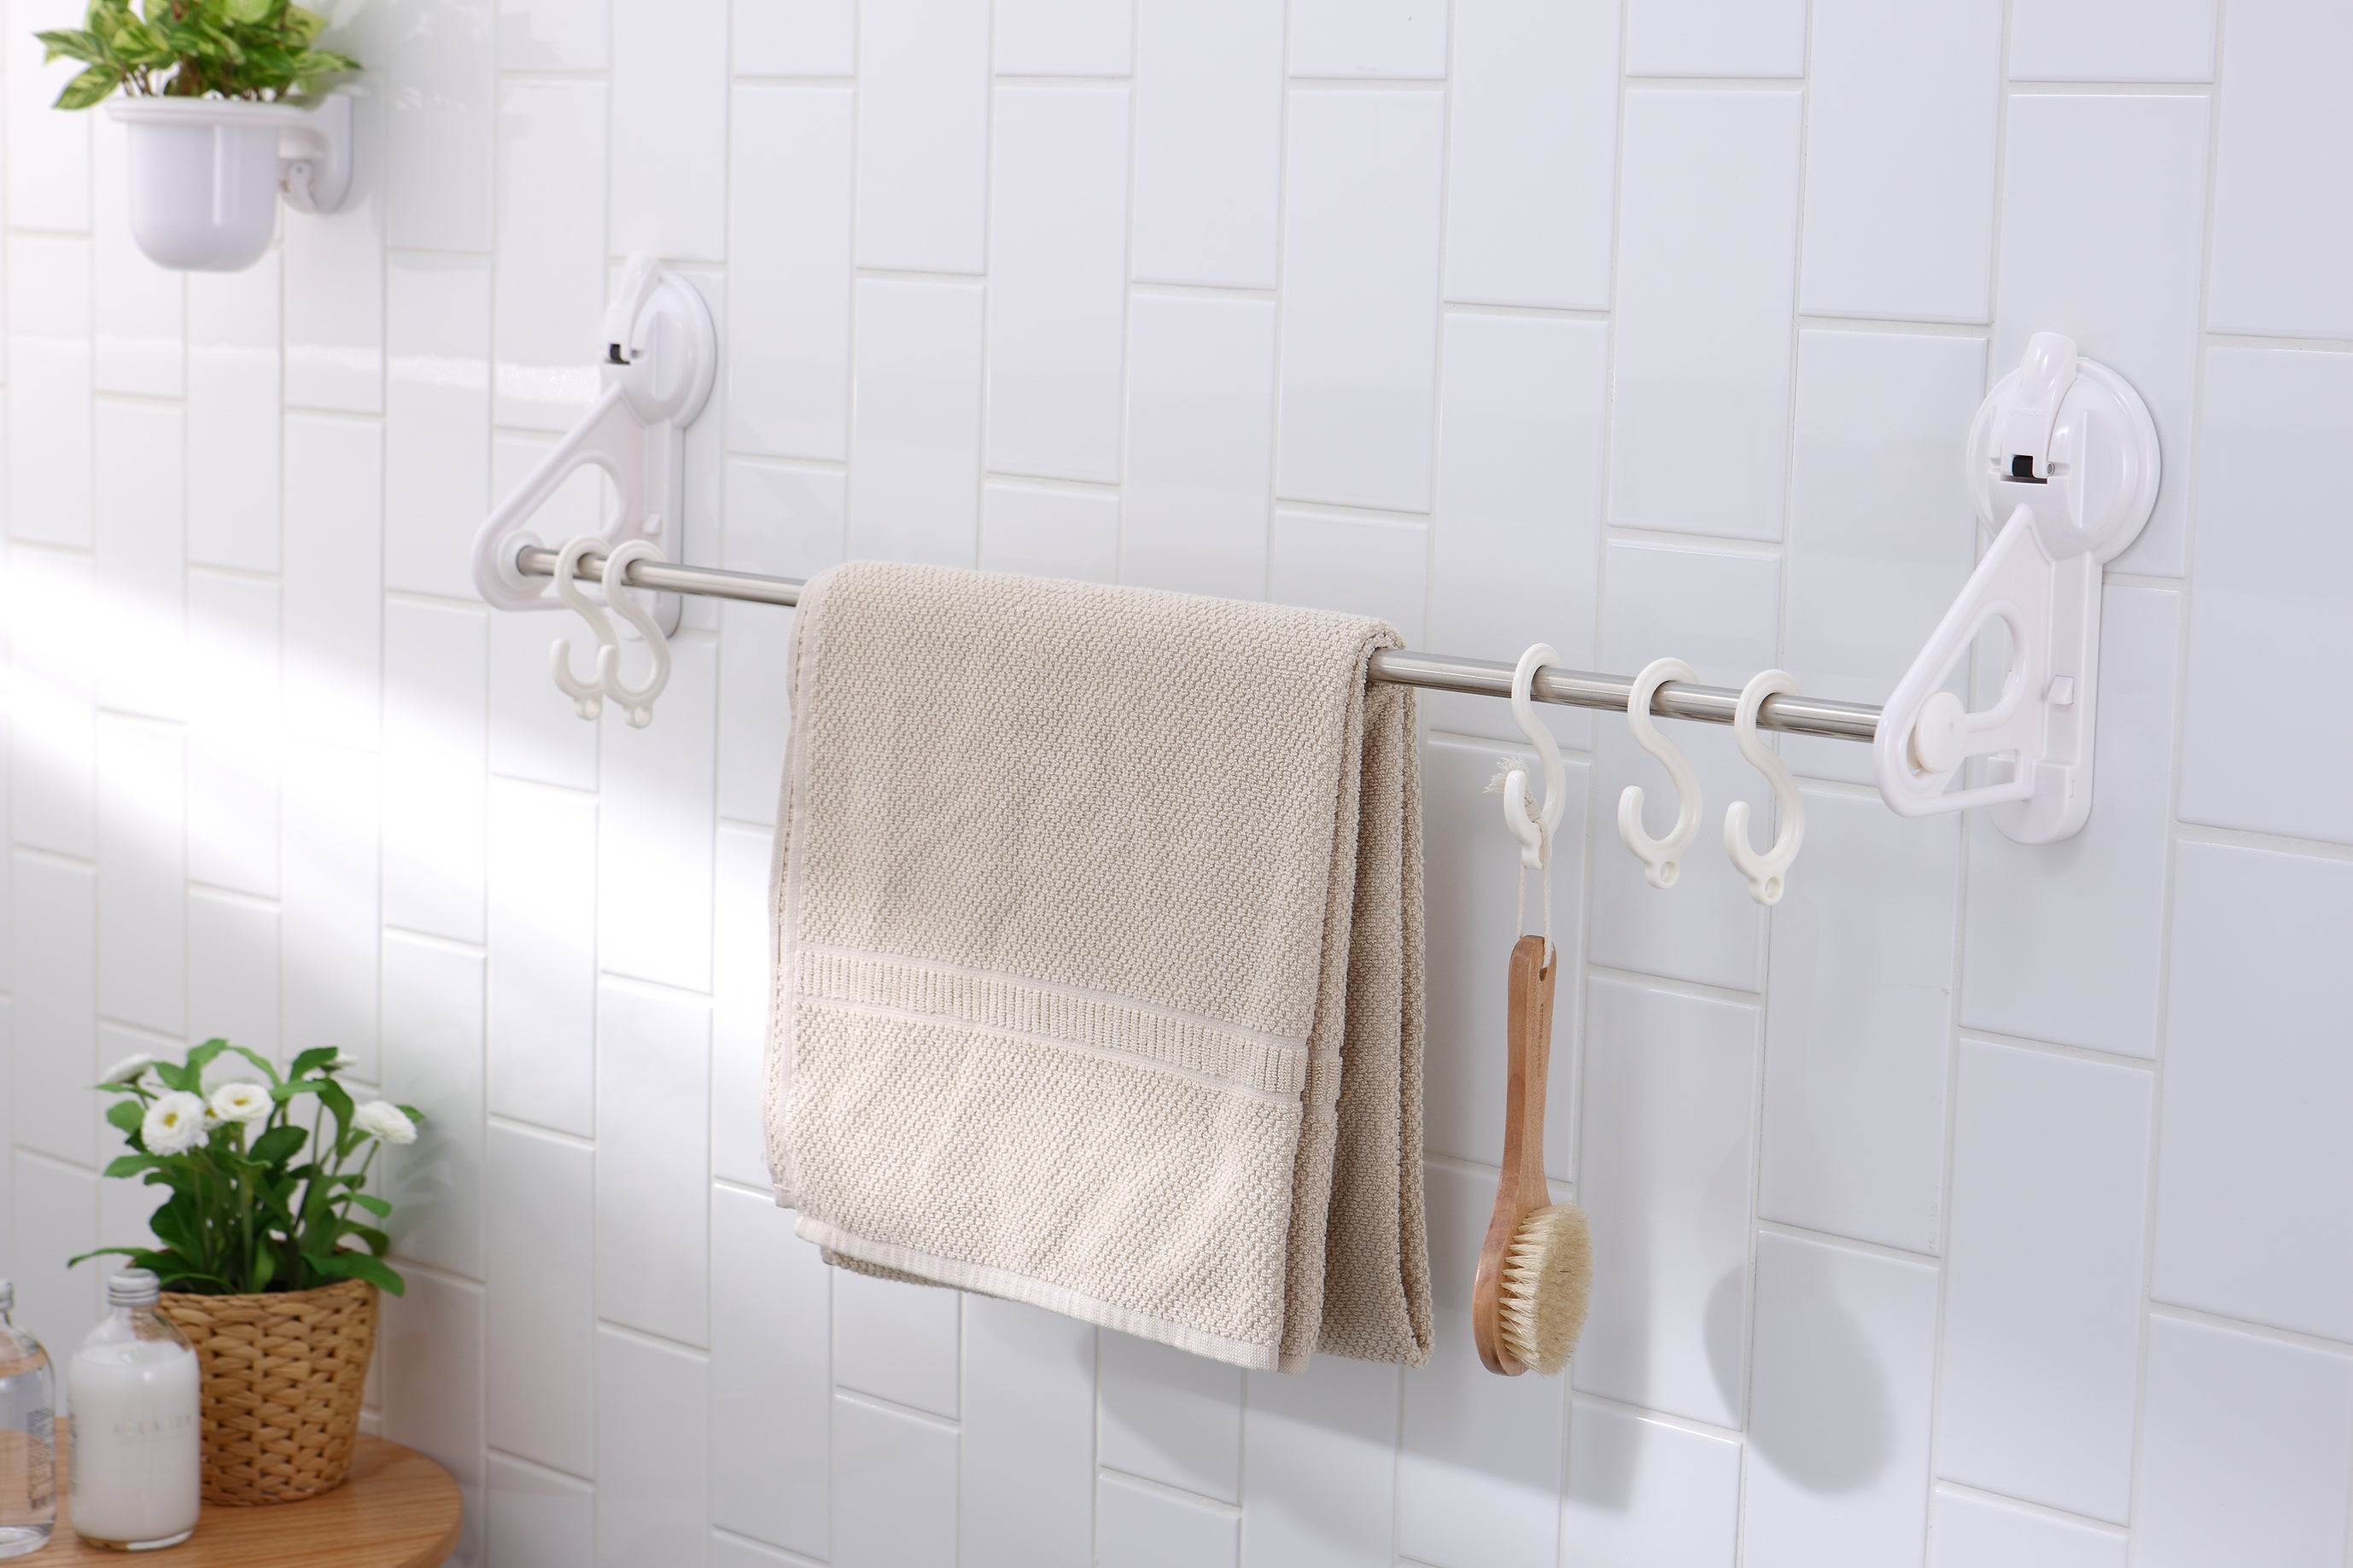 S61 DIANA DULEX TOWEL HOLDER SET